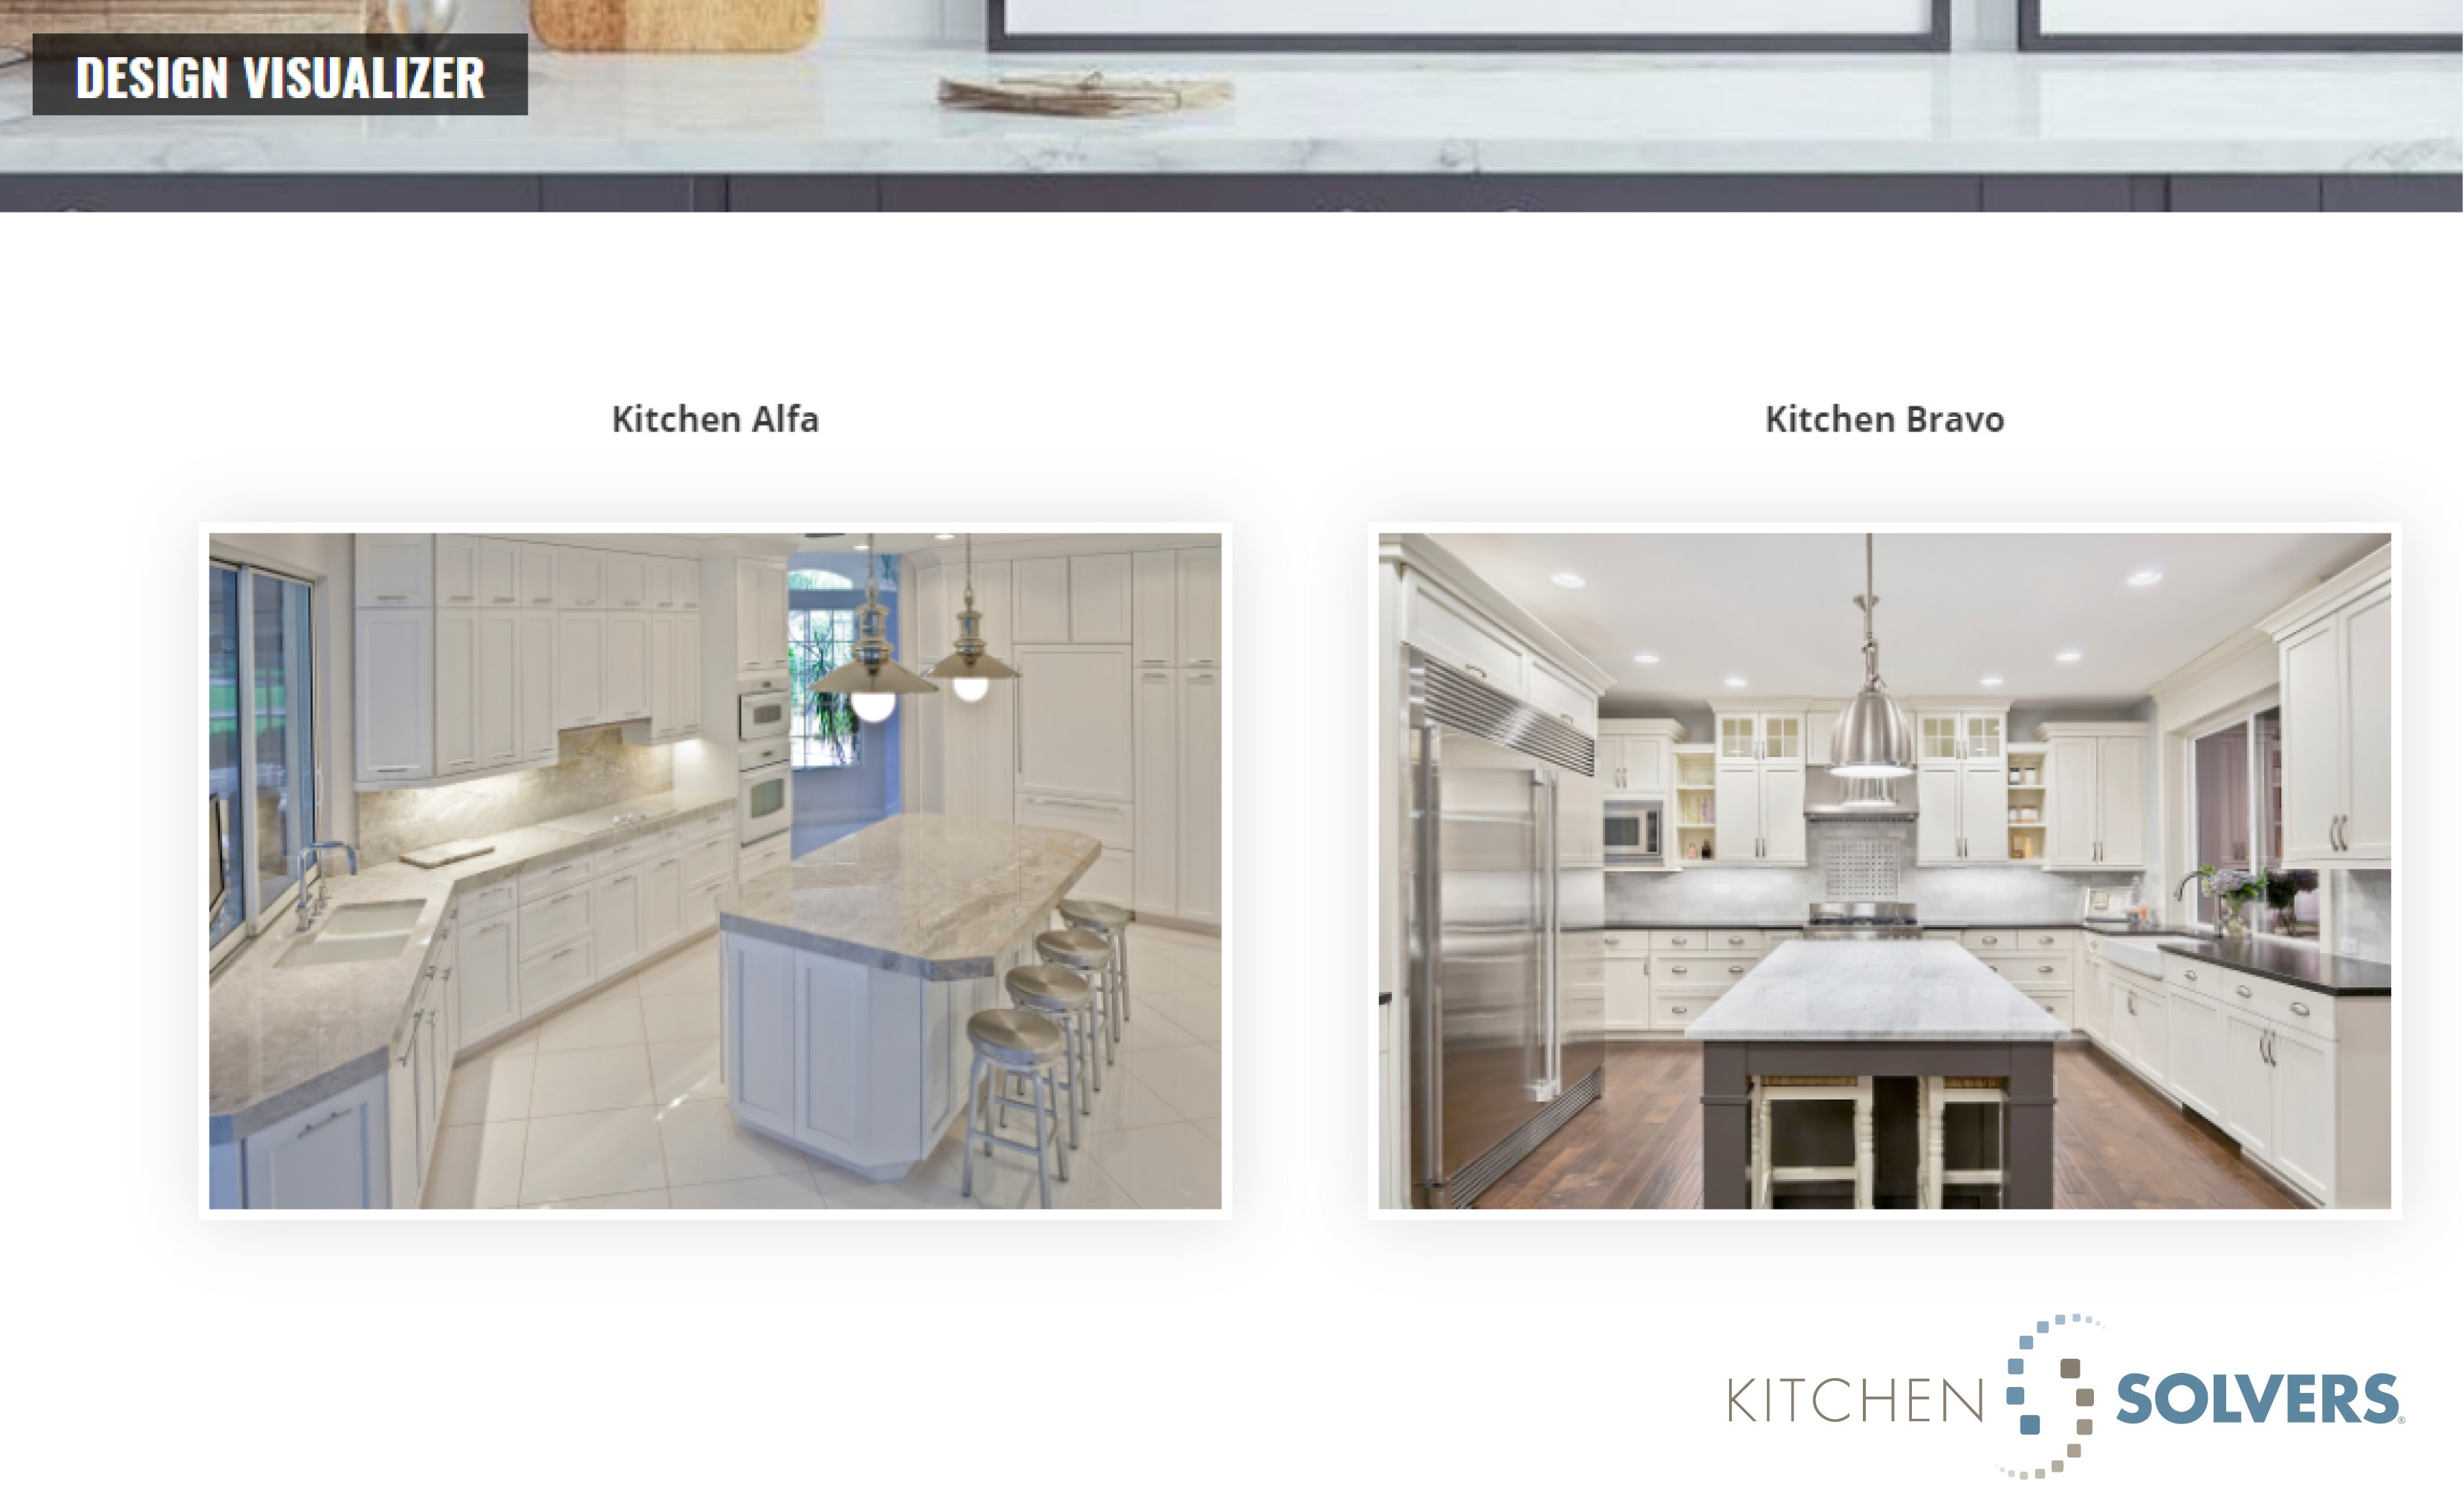 Kitchen Solvers Design Visualizer App